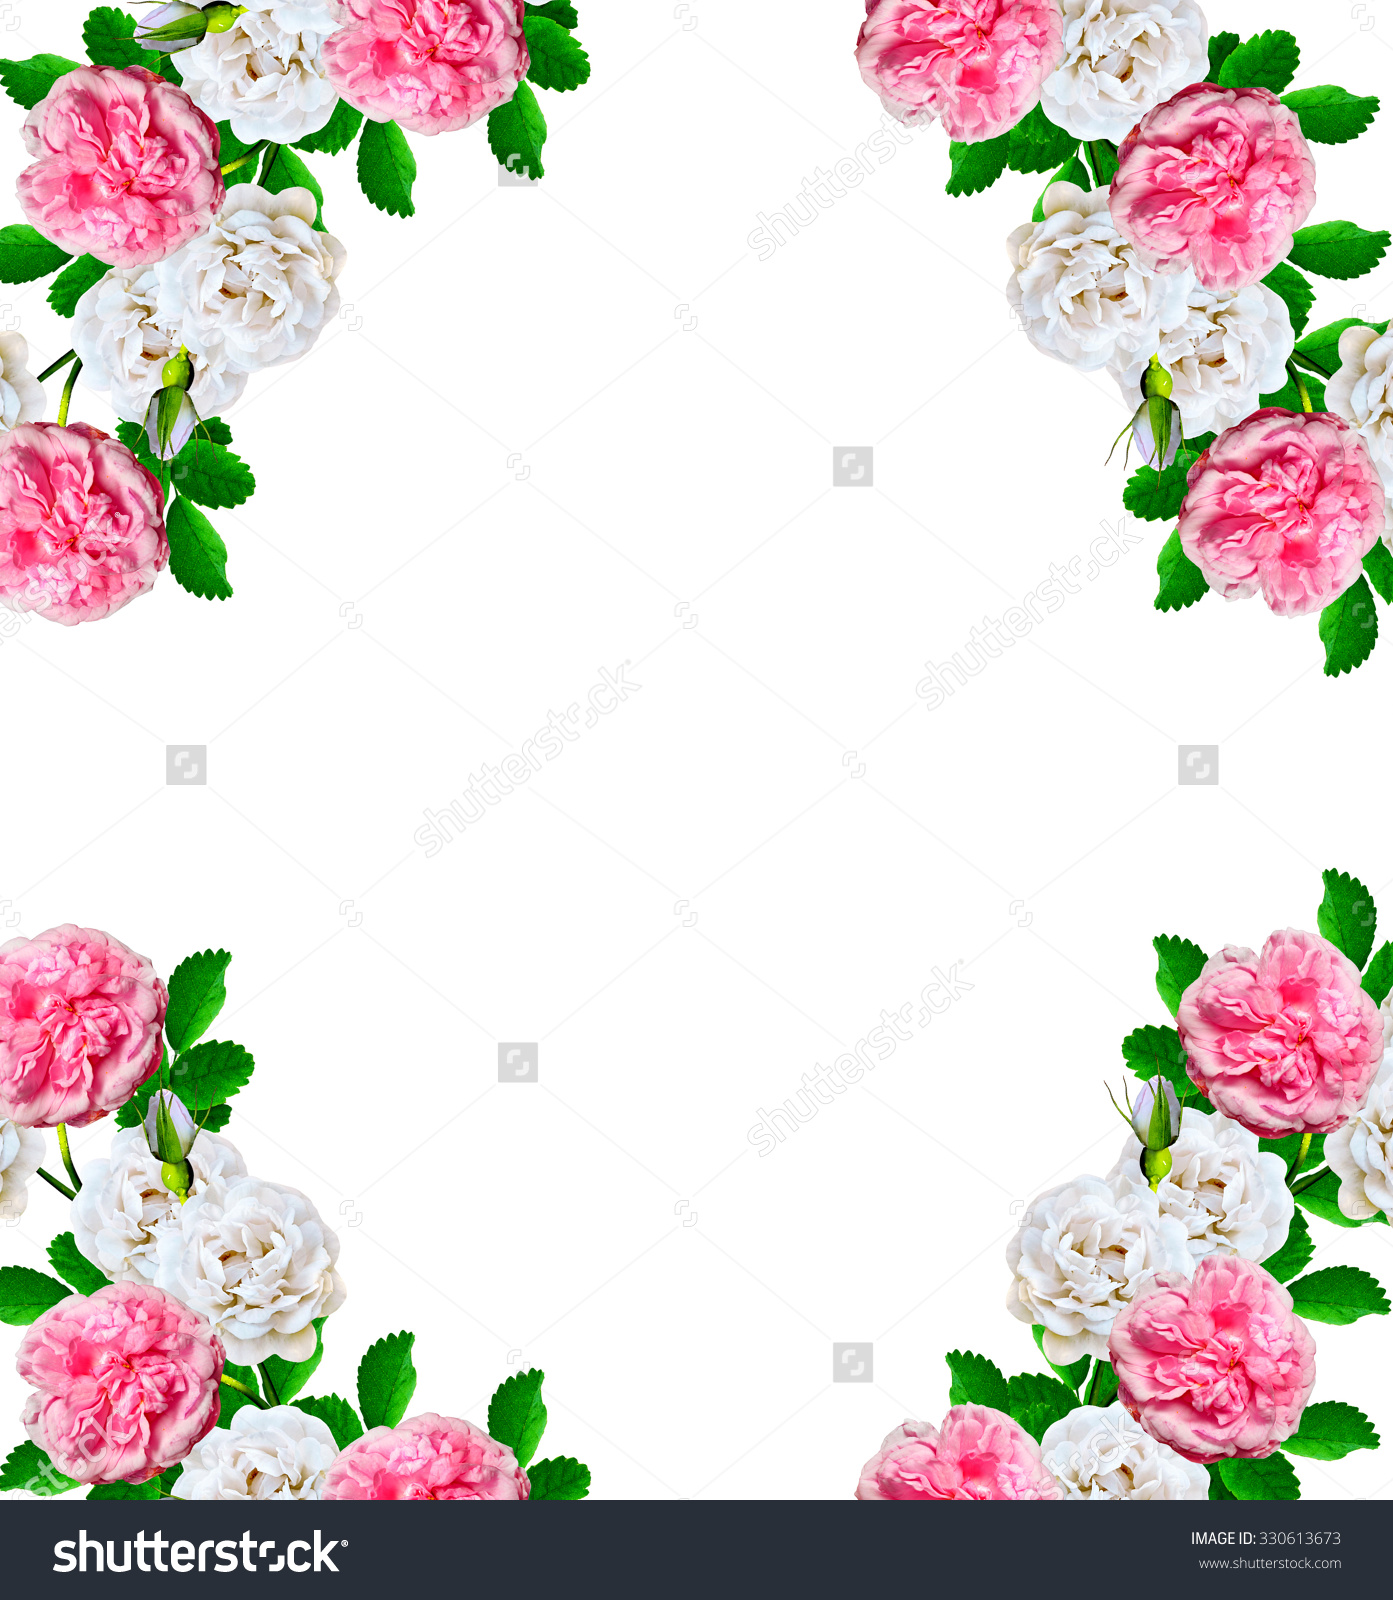 Rose-canina clipart #14, Download drawings